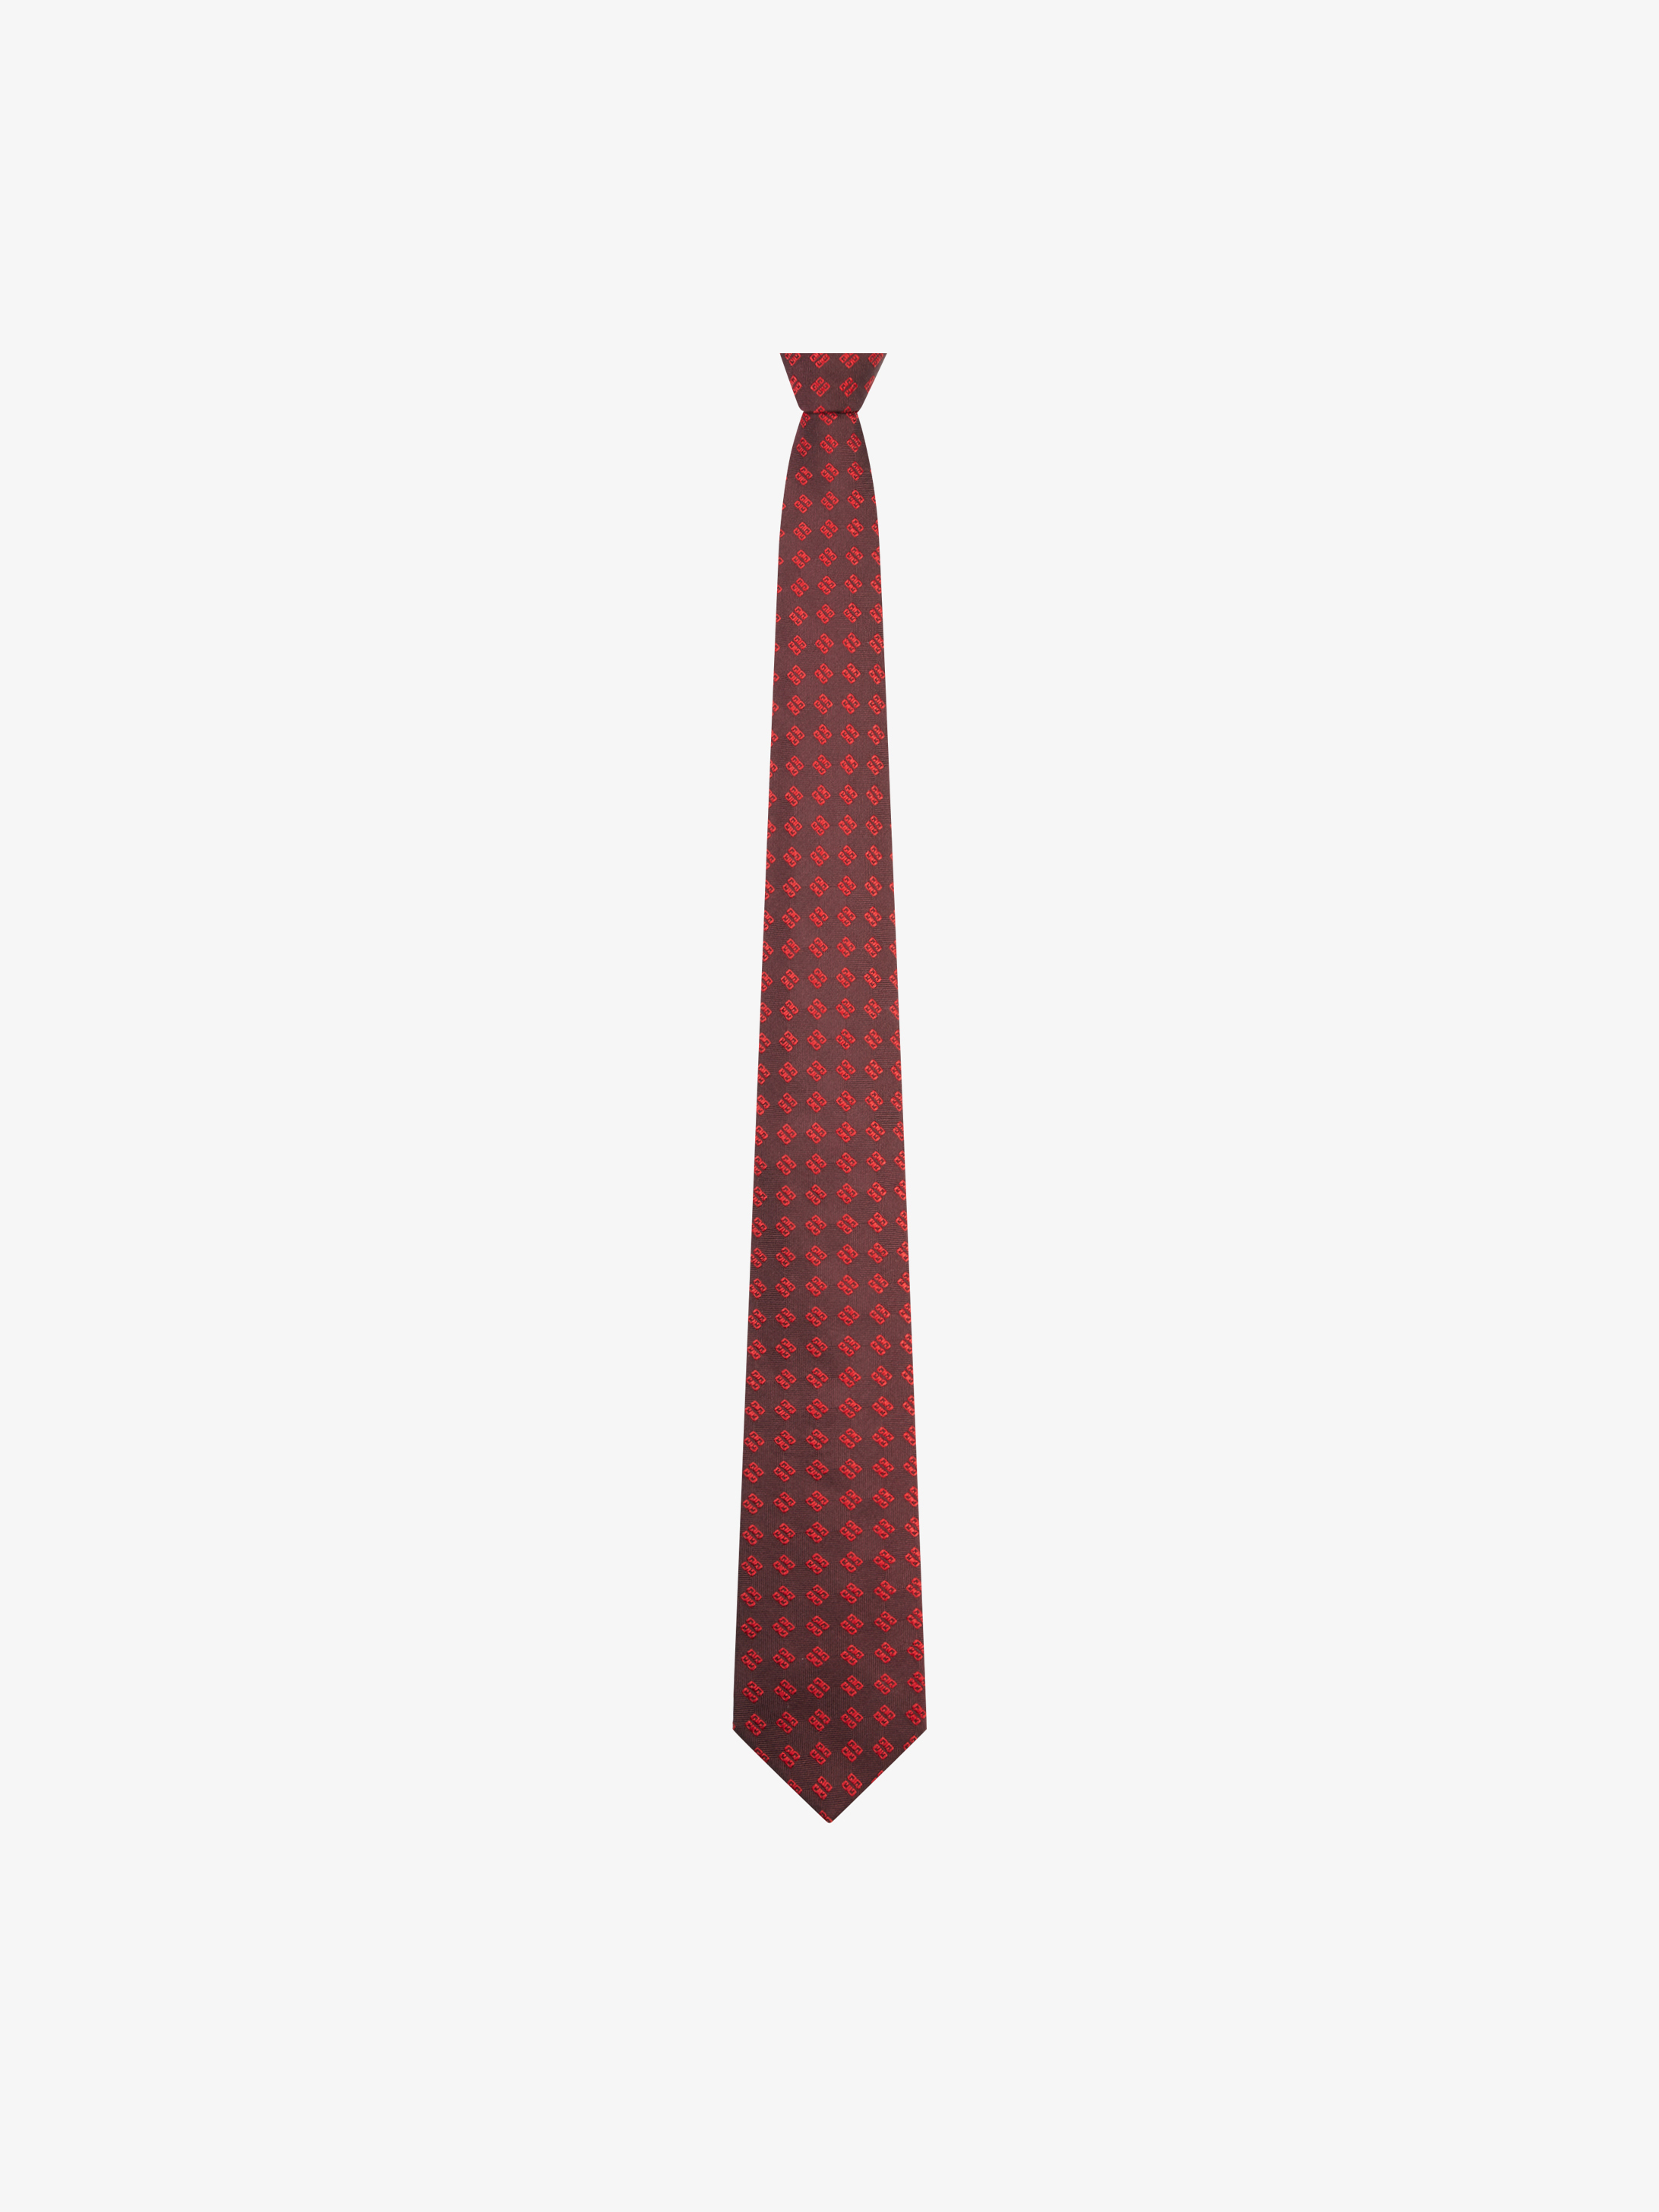 Givenchy Jacquard 4G aligned tie